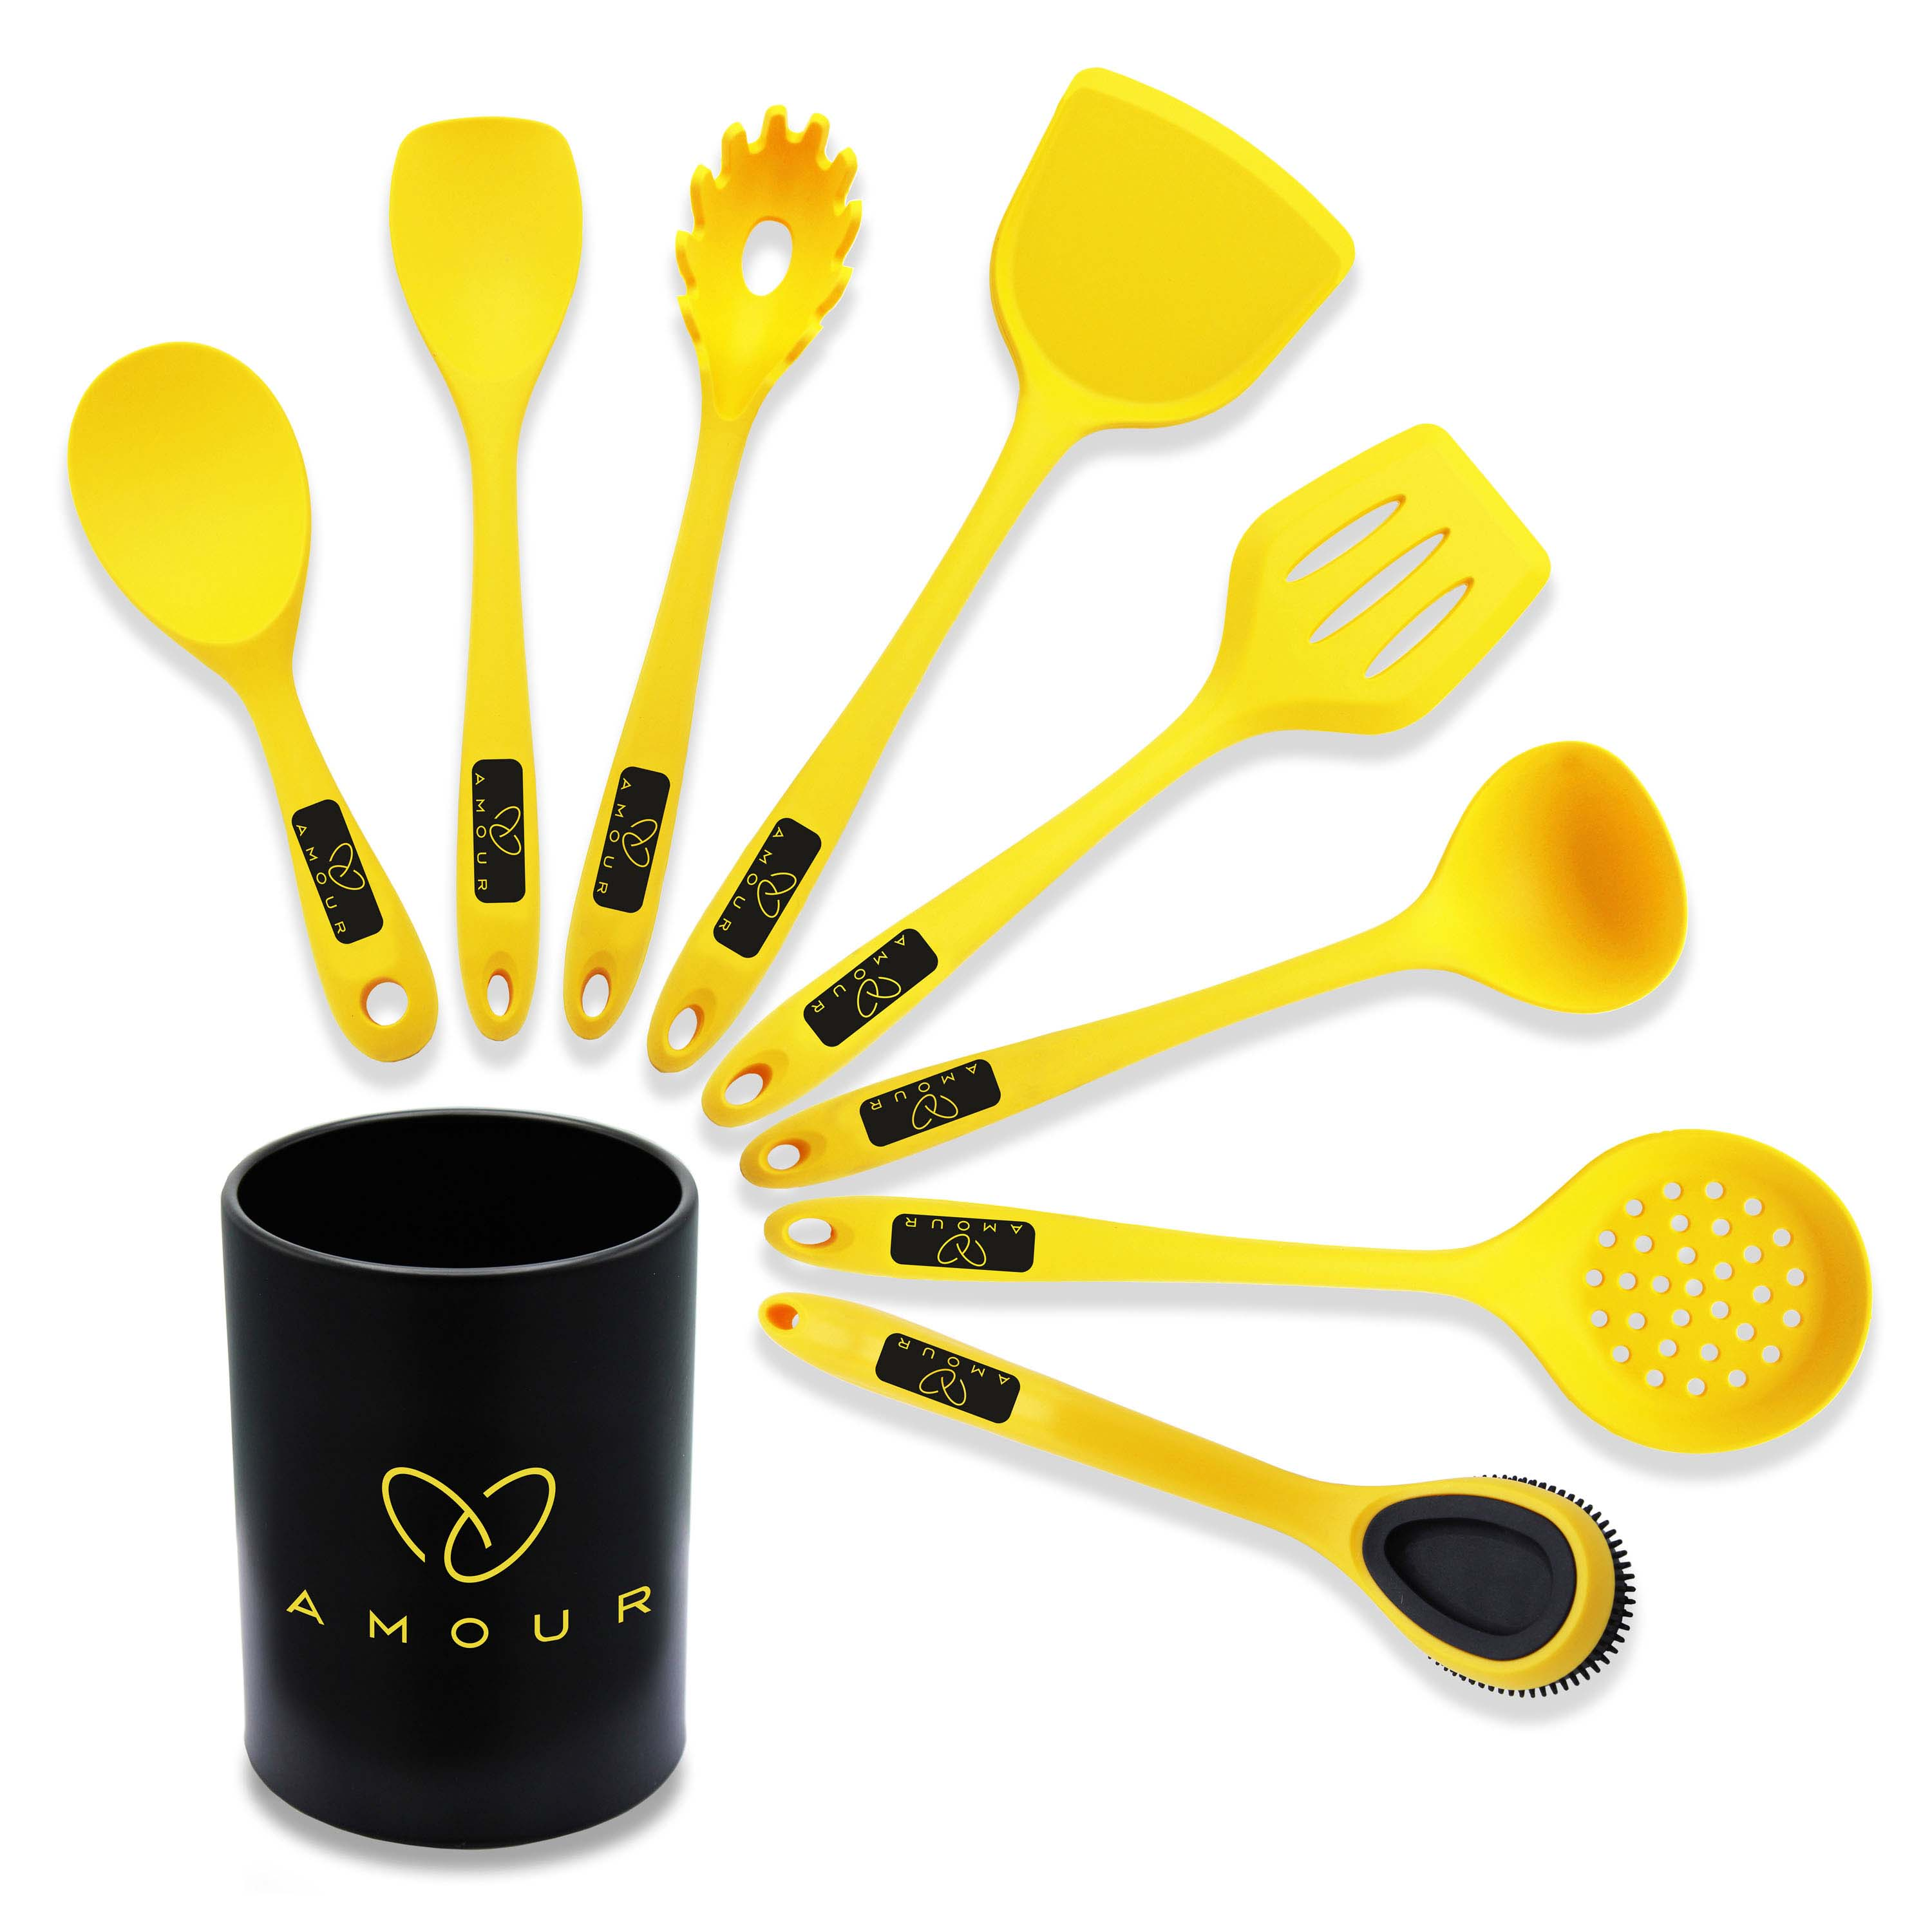 Amour | Amour Ultra Premium Silicon Kitchen Utensil 9 Piece Set, Silicone Cooking Utensil Set, Kitchen Gadgets Cookware Set, Best Gift - Kitchen Tool Set (Yellow)